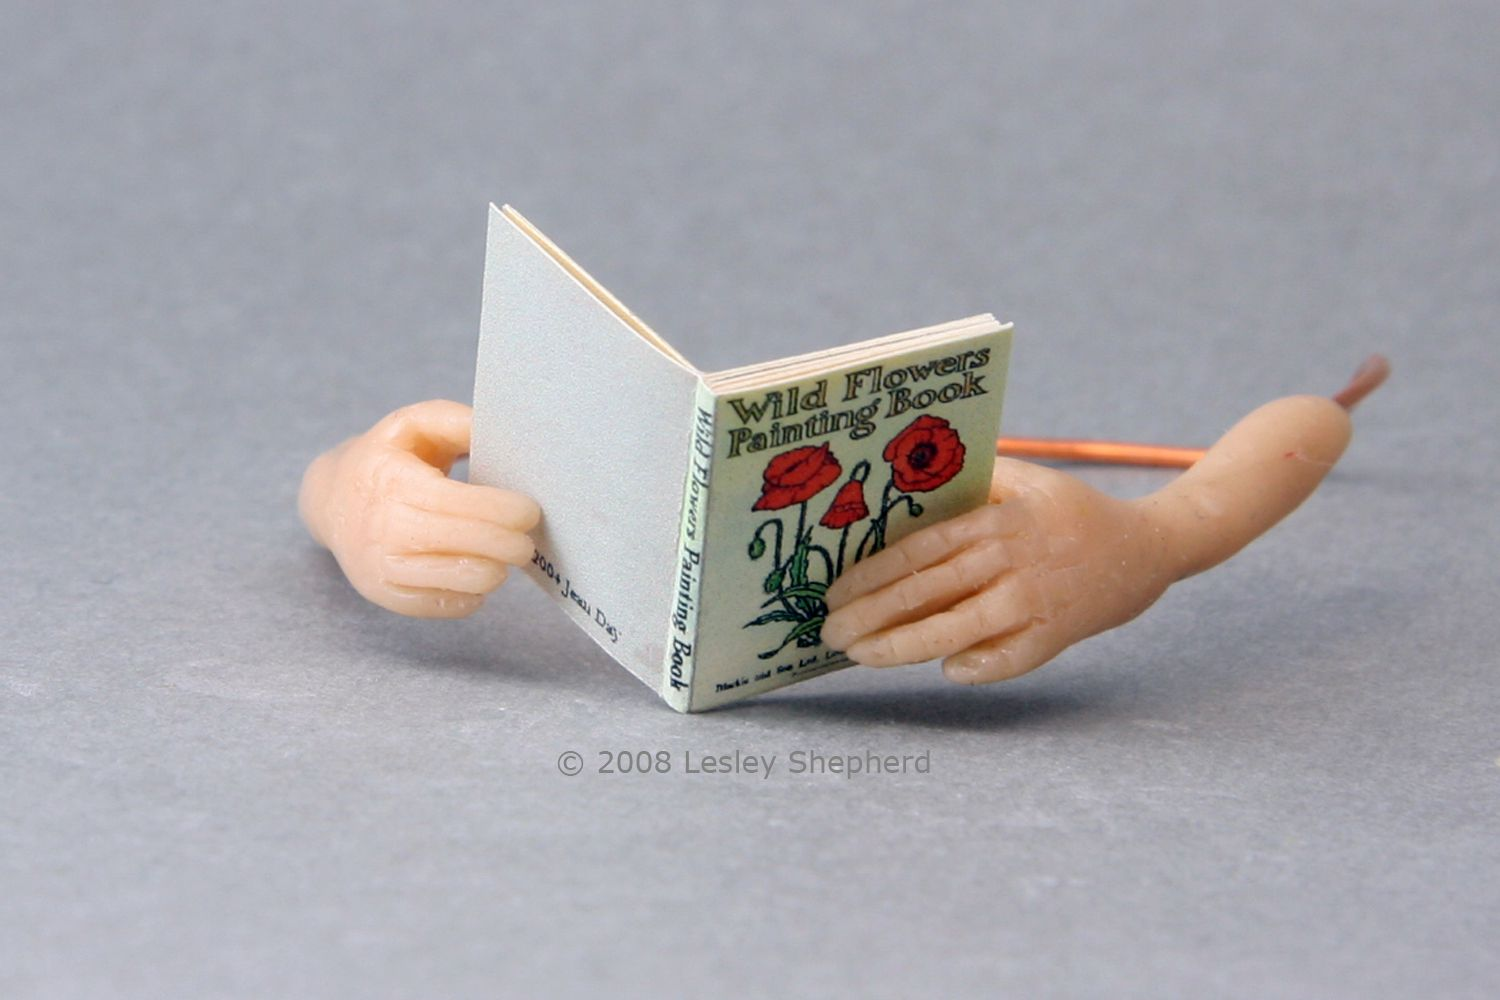 1:12 scale miniature doll hands, sculpted from polymer clay with detailed fingers and thumbs, hold a dollhouse book